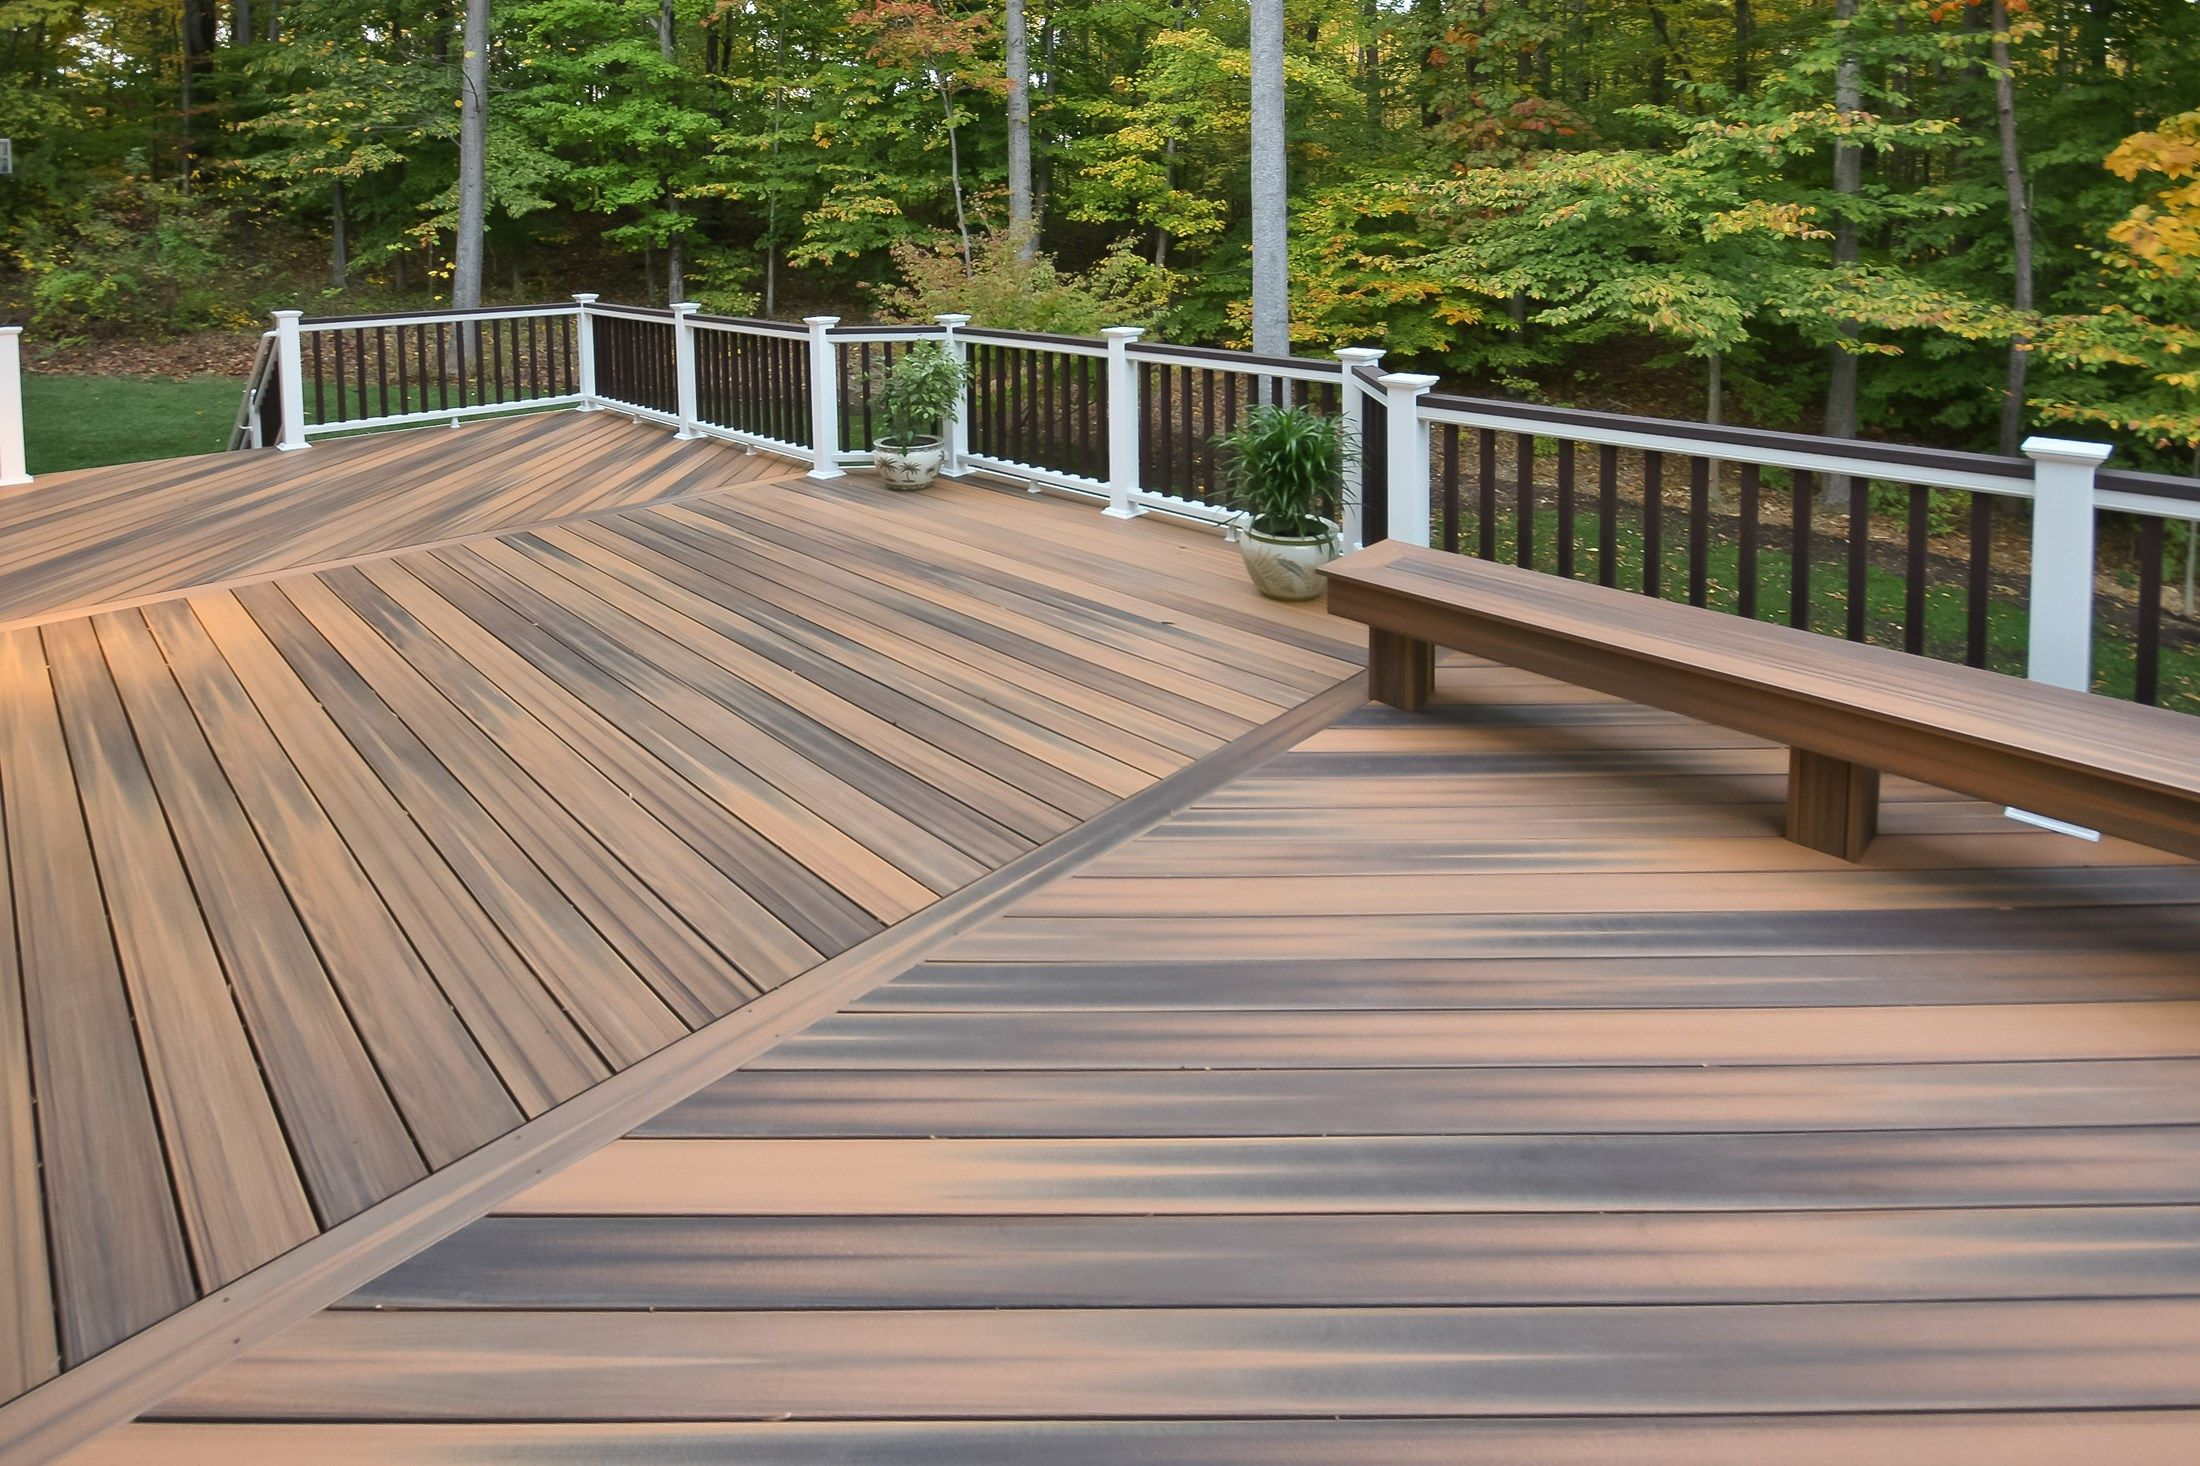 Decks controlling decking seams